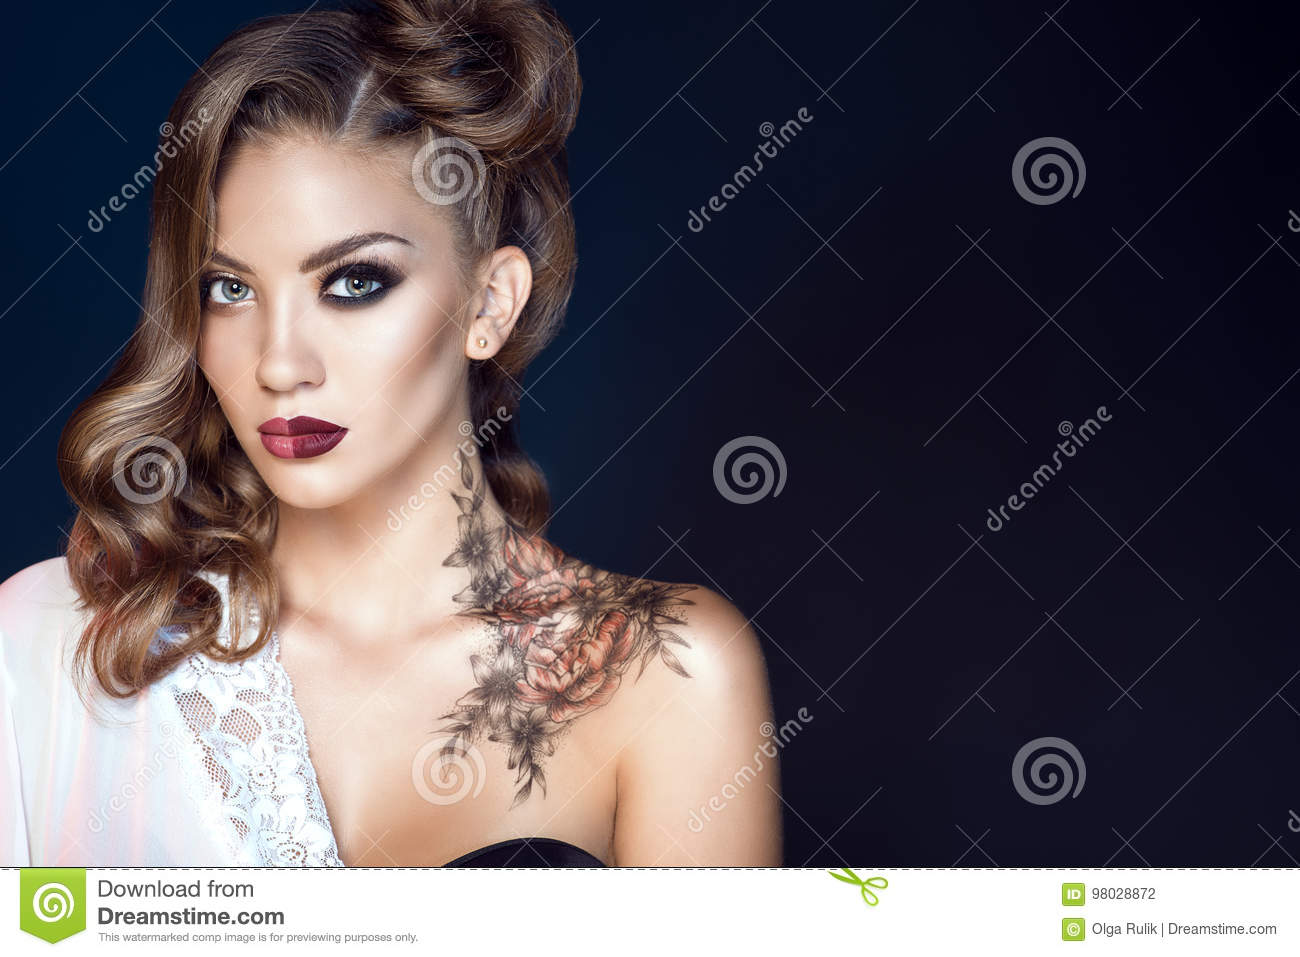 Model with artistic make up and hairstyle. Body art on her shoulder. Ideal woman concept